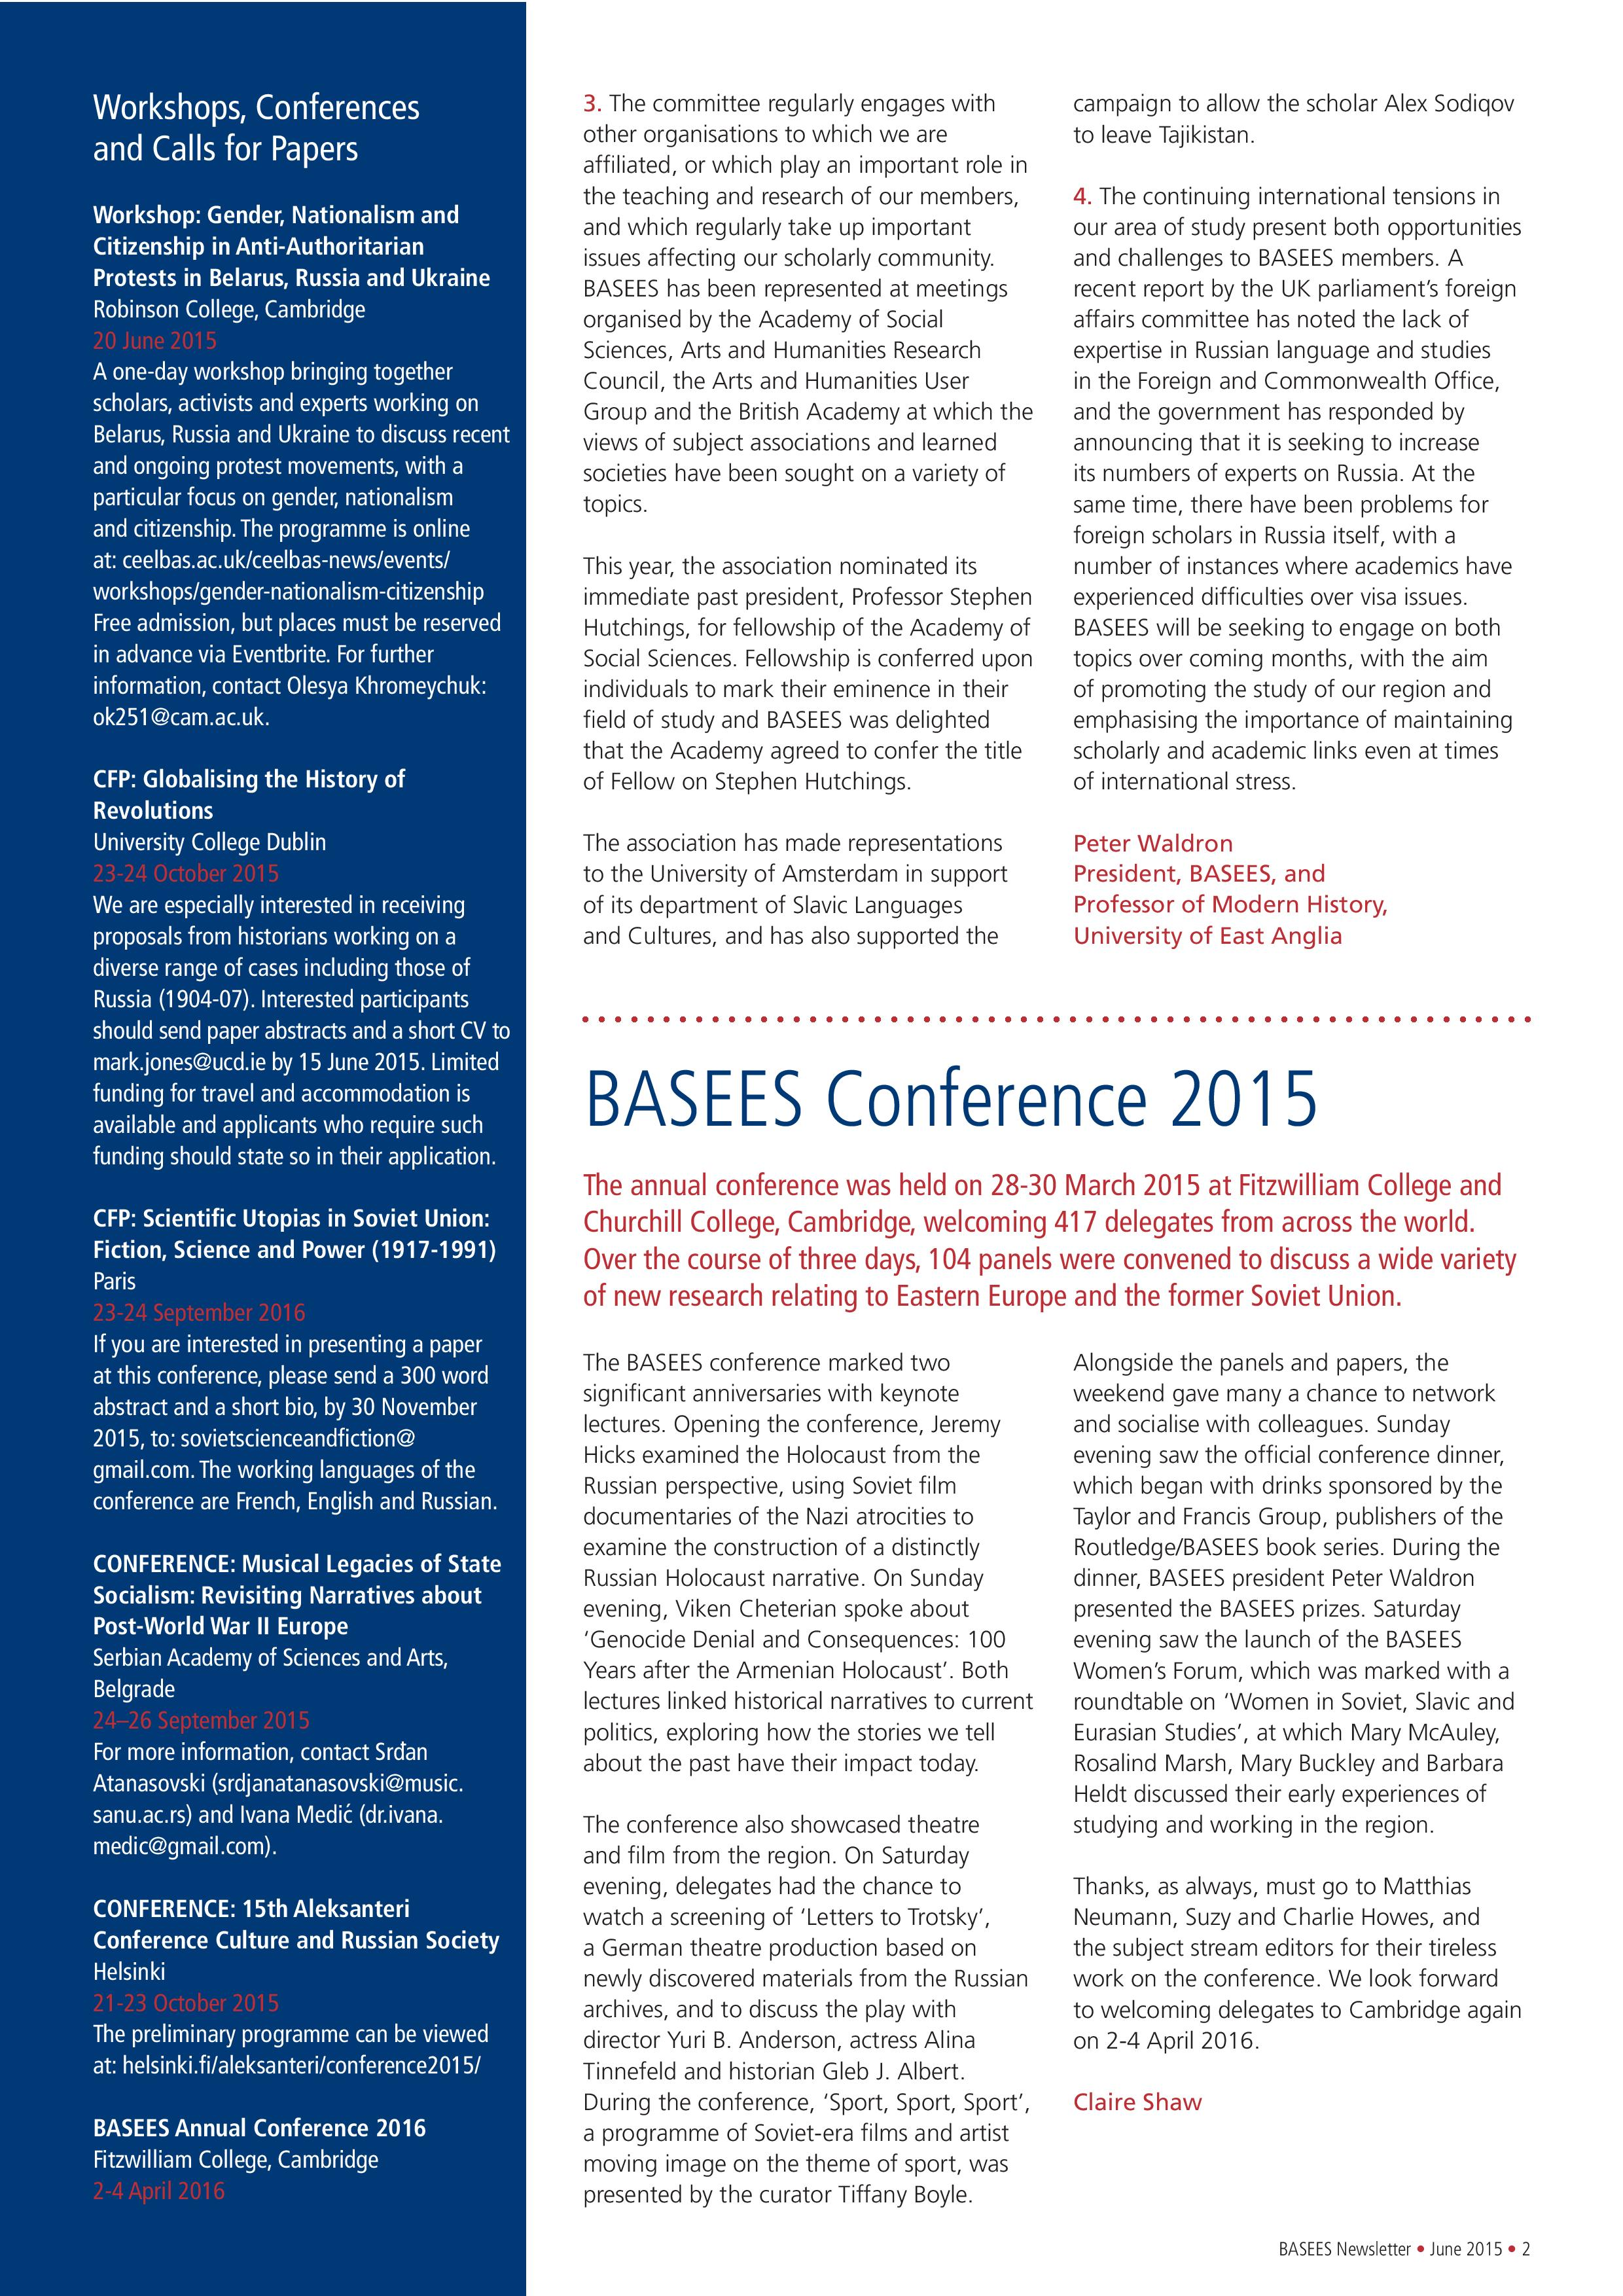 BASEES_NL14-page-002.jpg